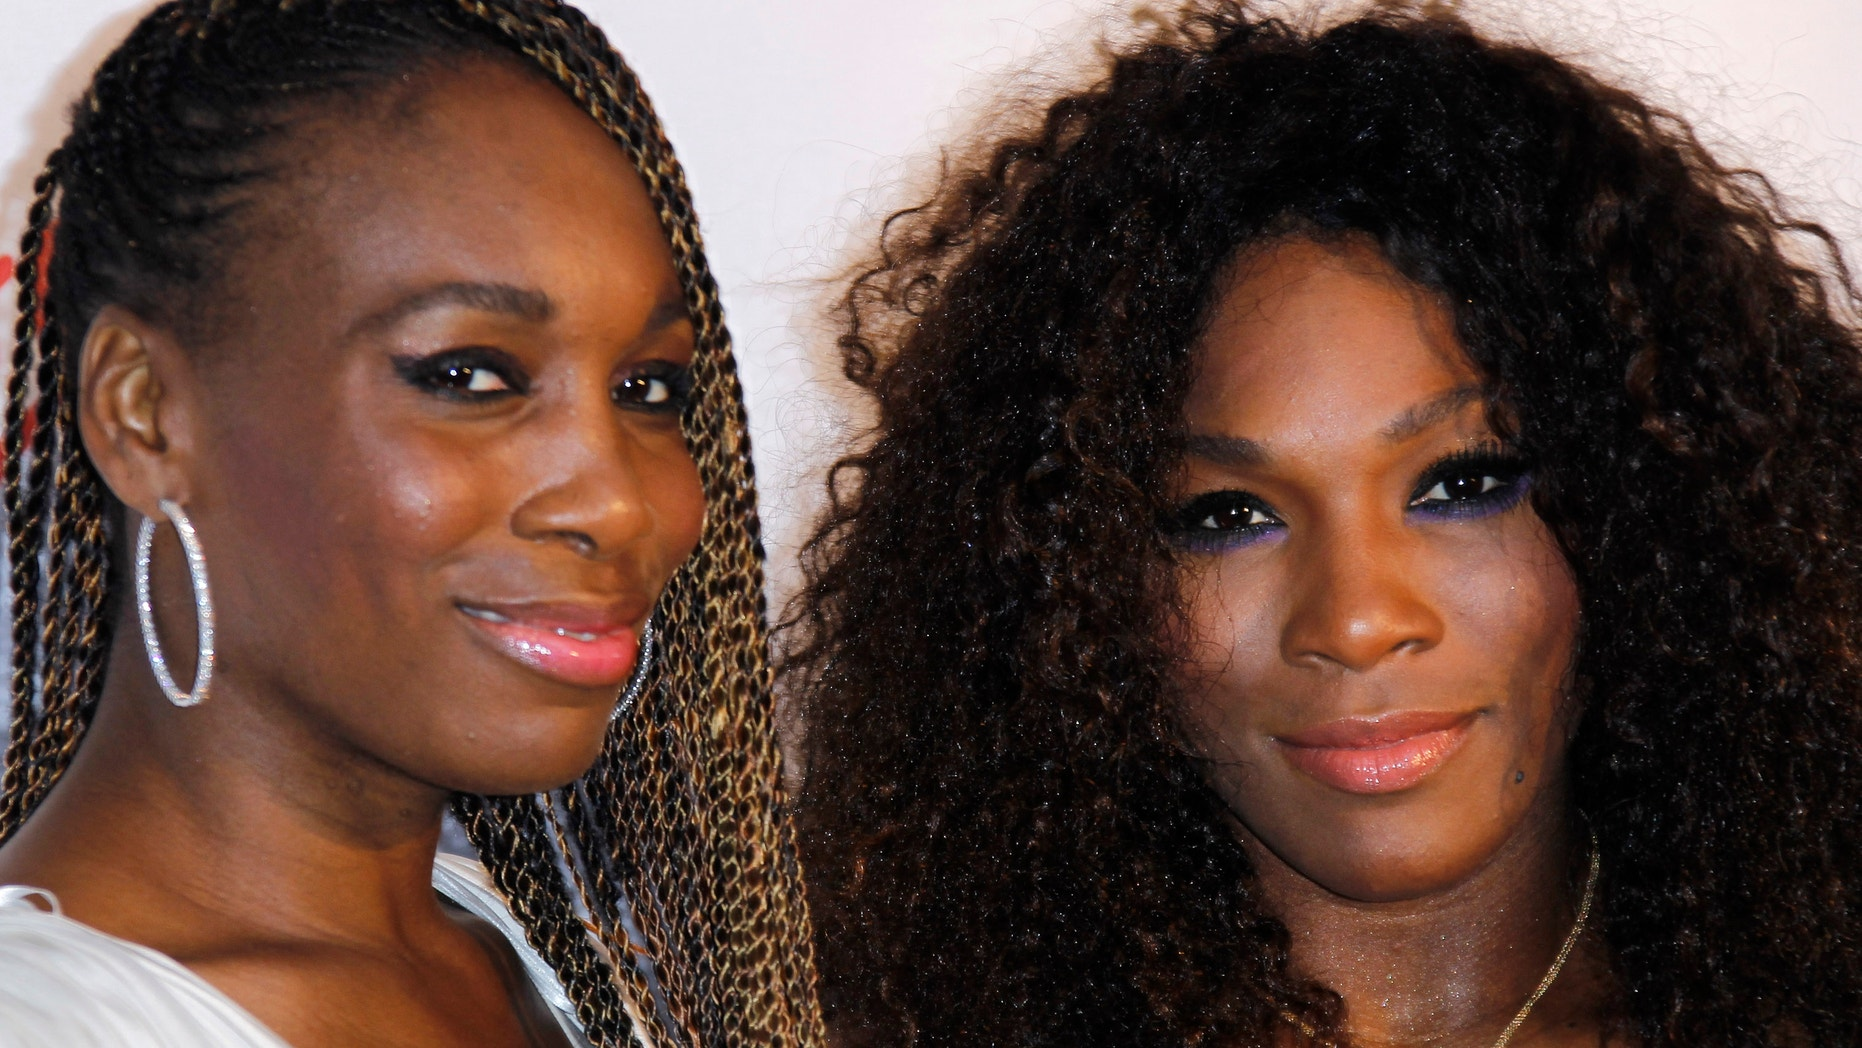 The Williams sisters, pictured here at a pre-Wimbledon party on June 21, 2012, will attempt to extend their undefeated streak in doubles at this year's Olympics. (AP Photo)